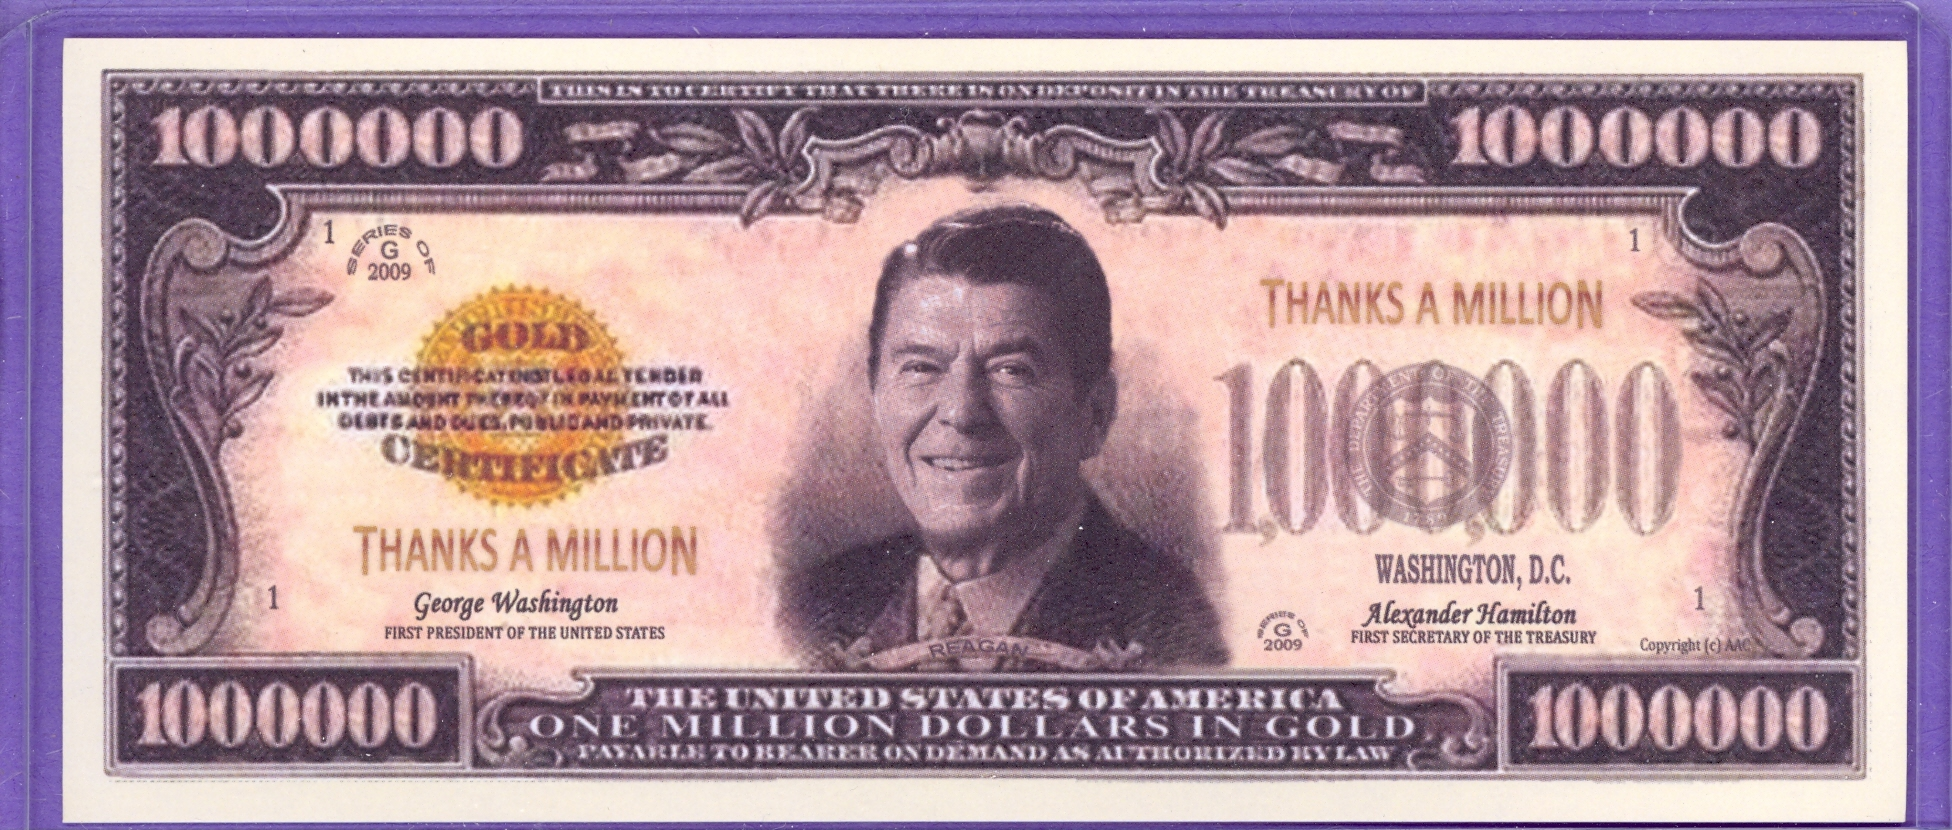 Ronald Reagan $1,000,000 in Gold Fantasy or Novelty Note